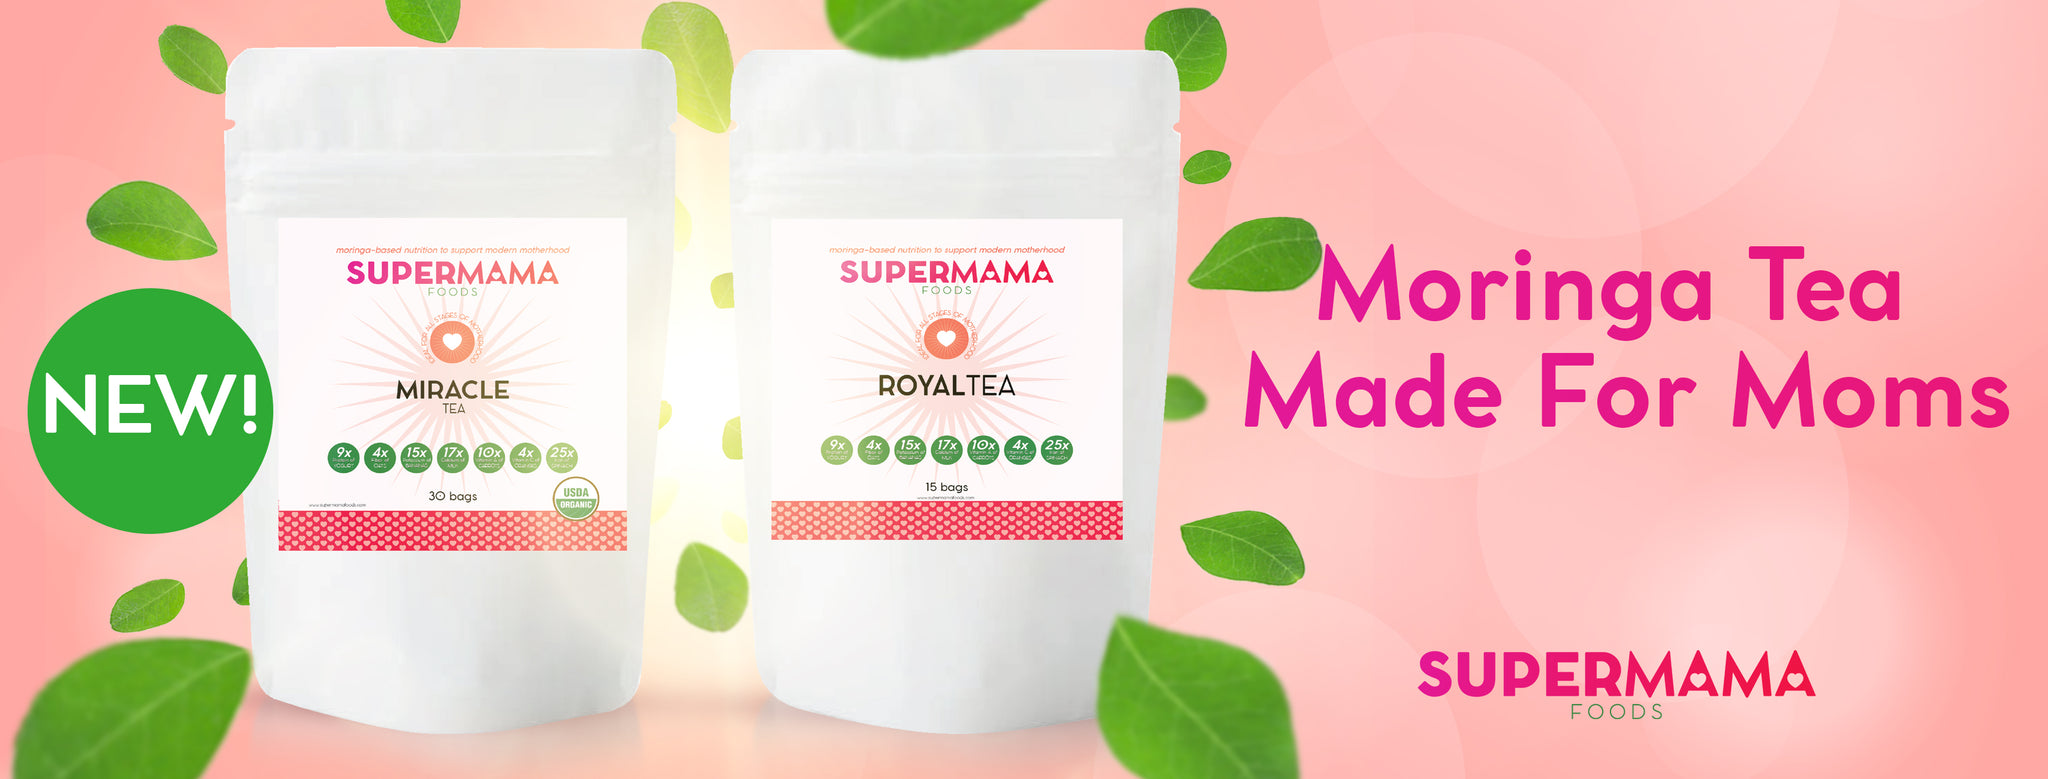 Moringa Tea for Moms